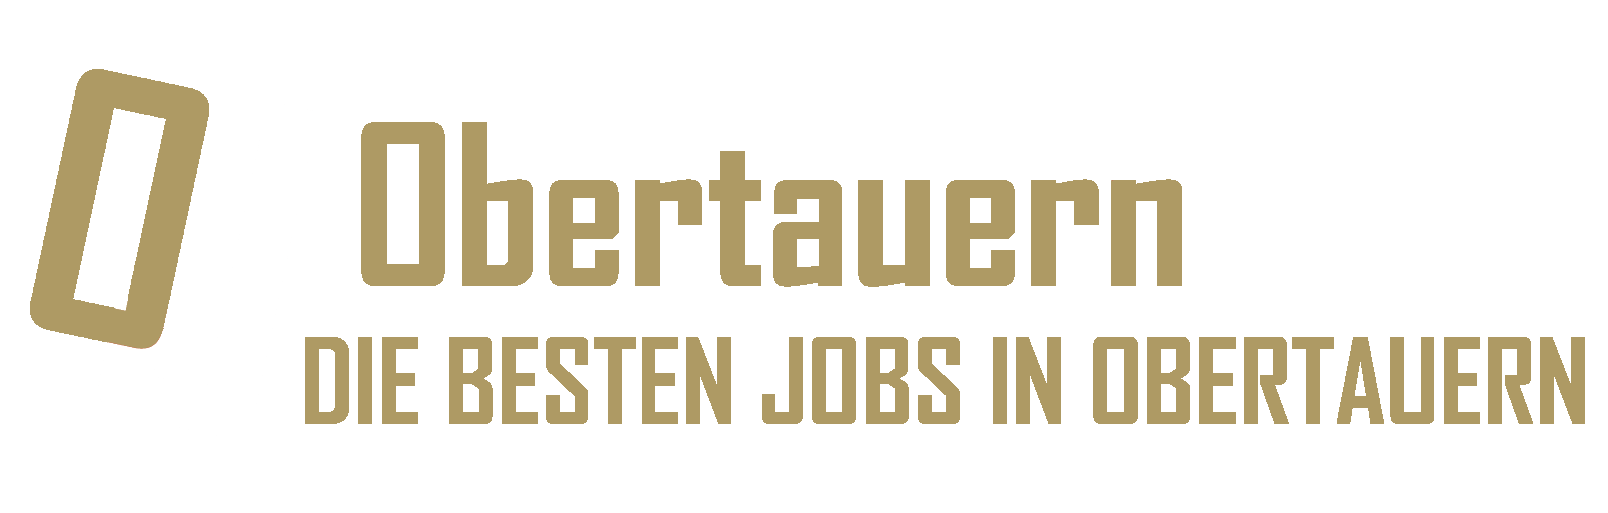 Obertauernjob.at